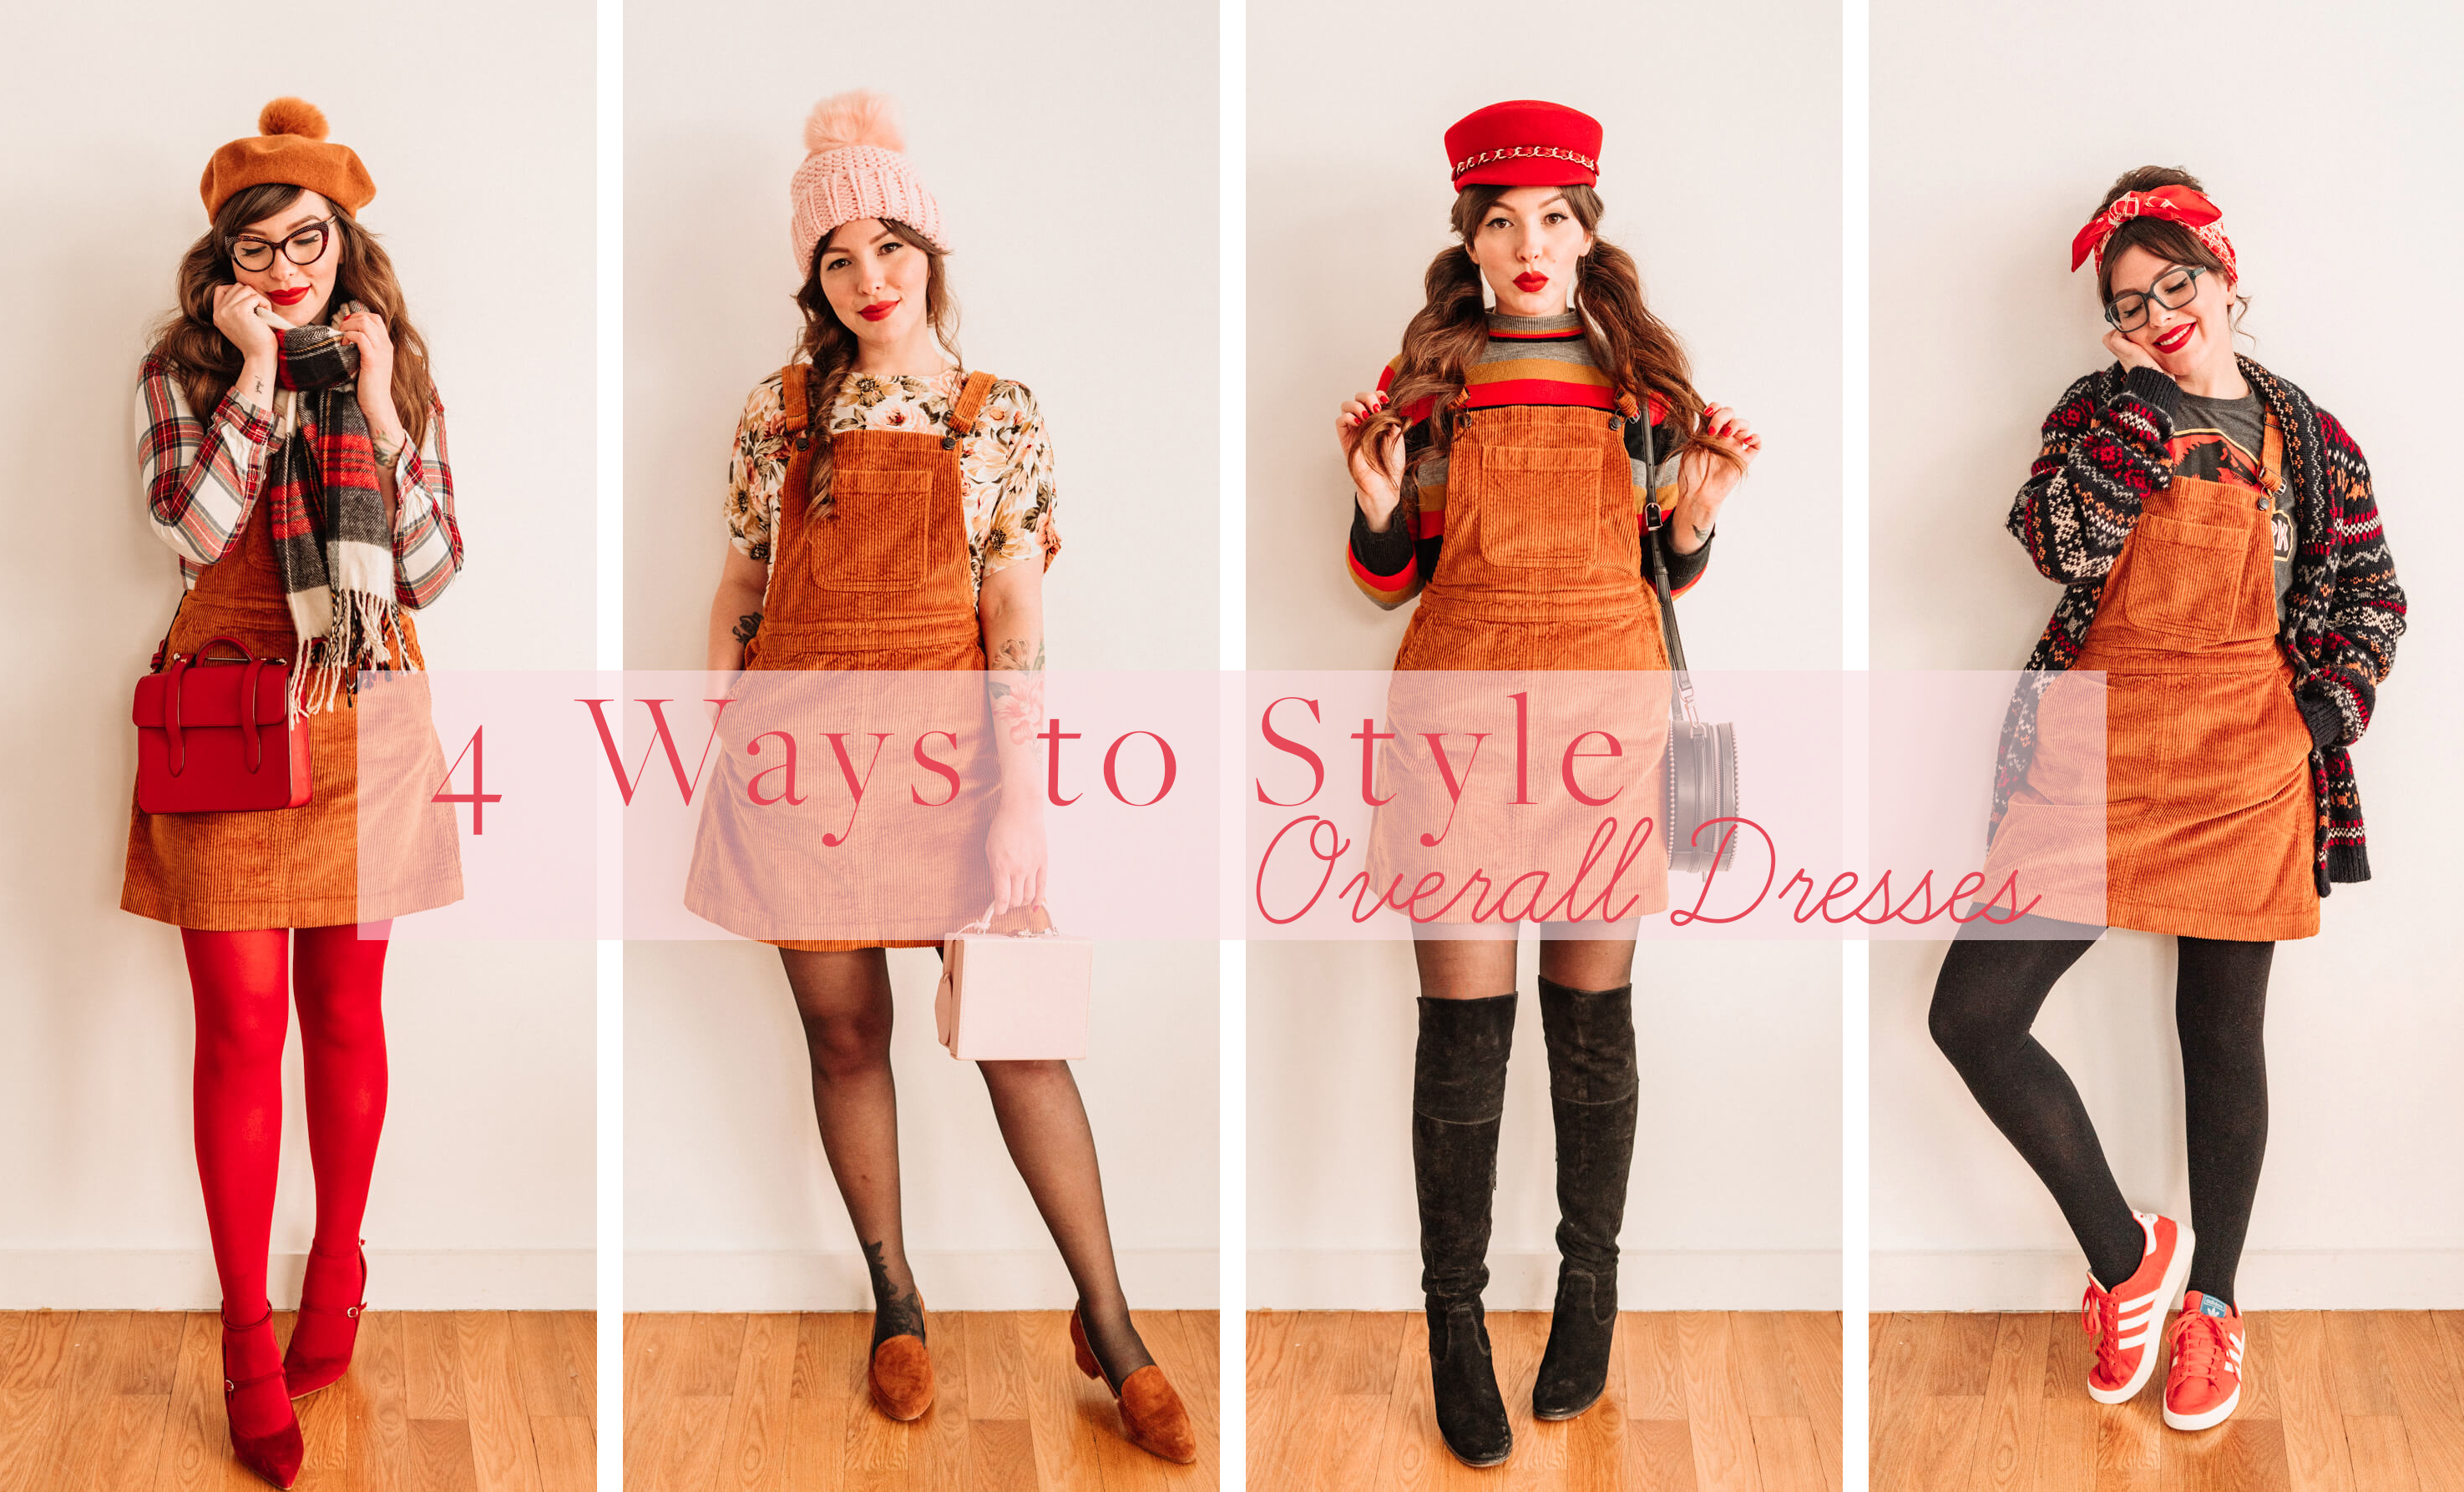 4 ways to style a corduroy overall dress